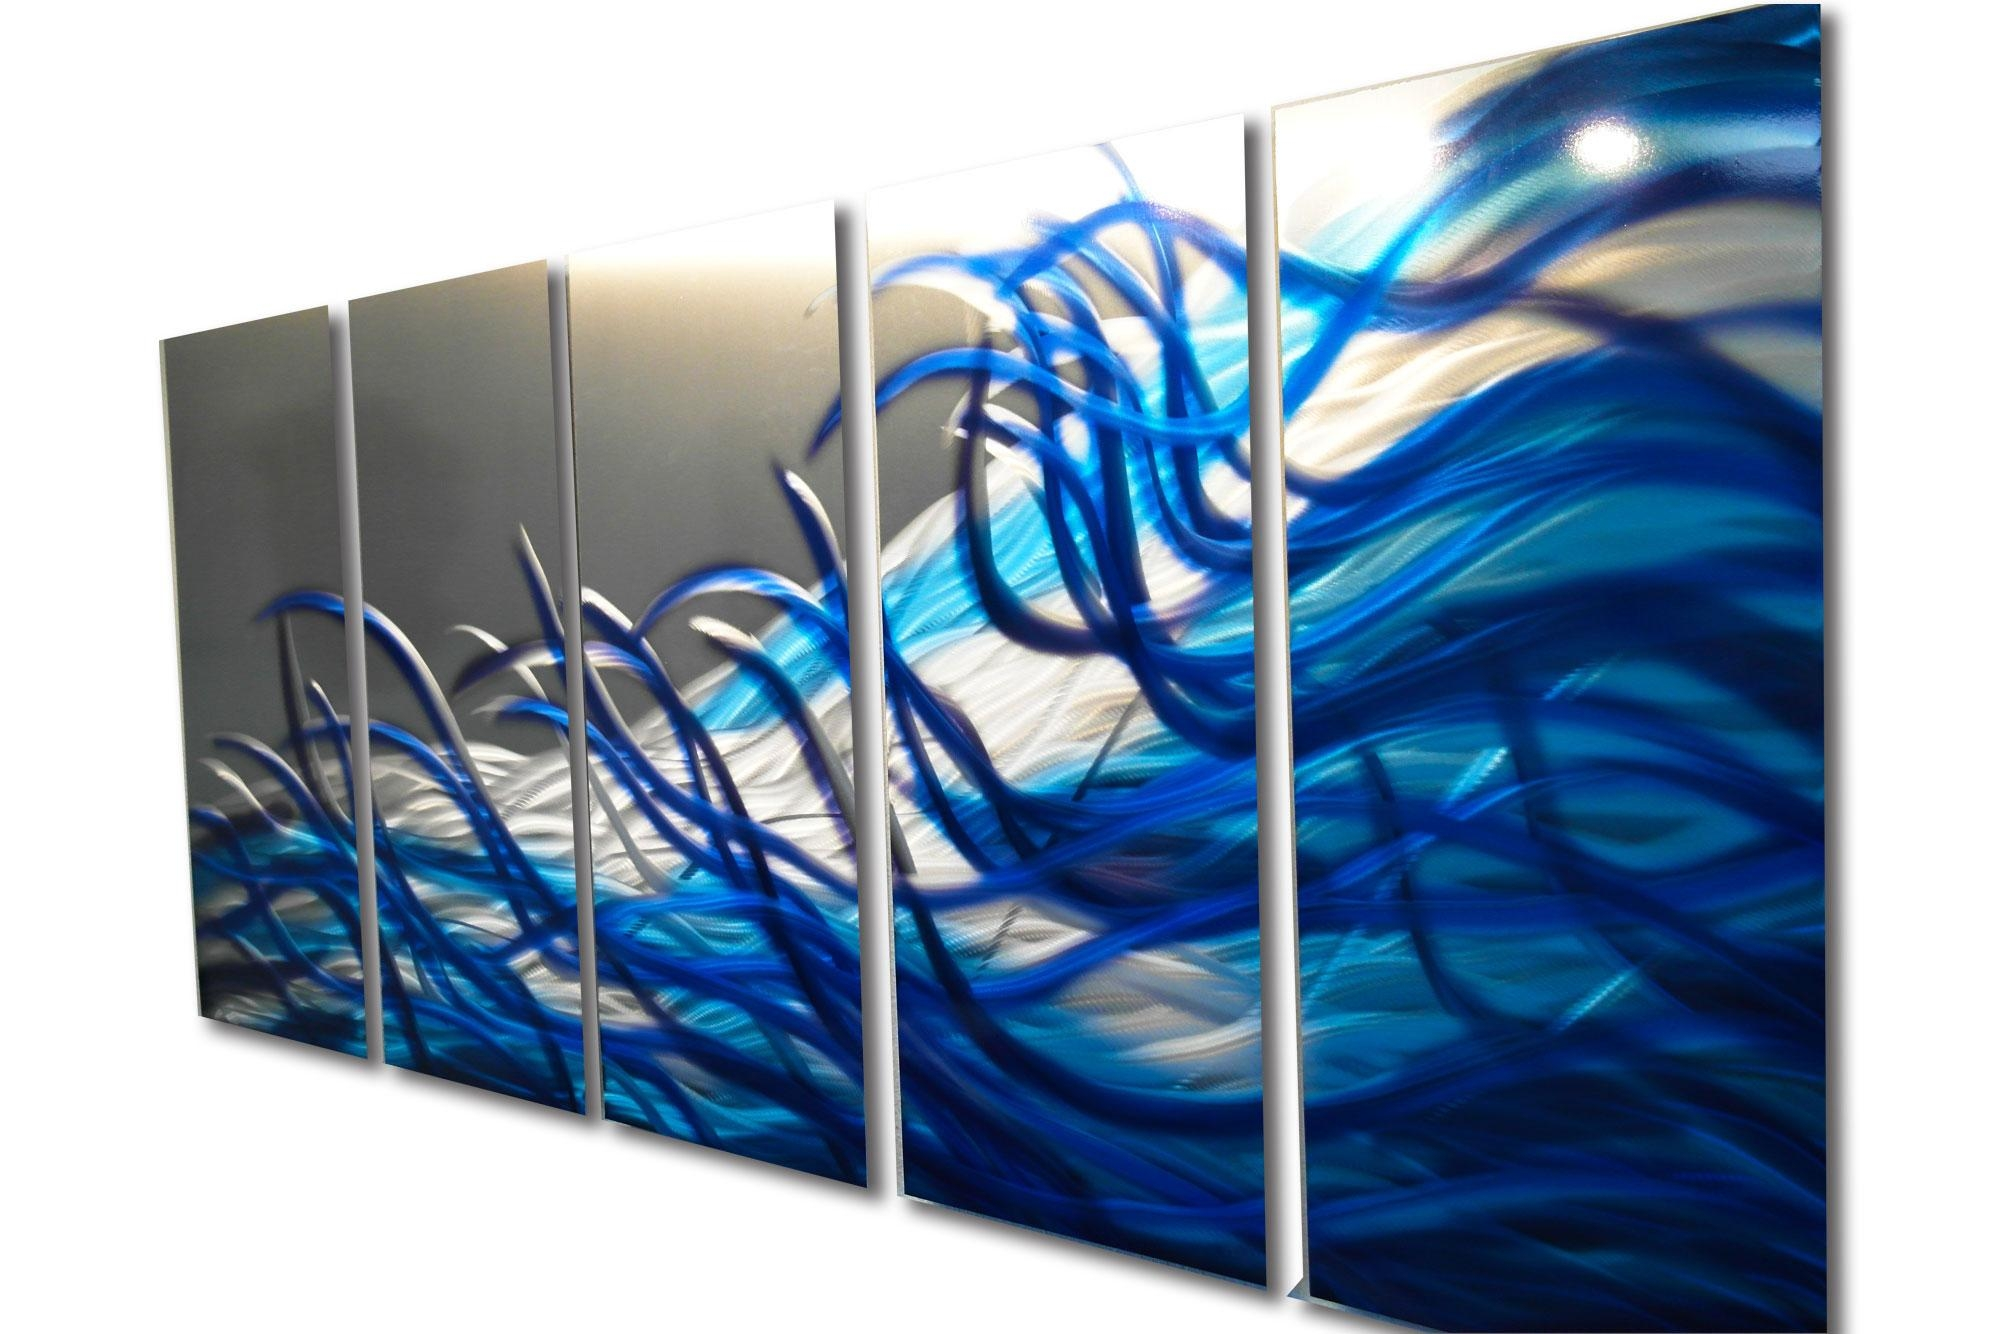 Resonance Blue 36X79 Metal Wall Art Contemporary Modern Decor In Blue And White Wall Art (View 11 of 20)